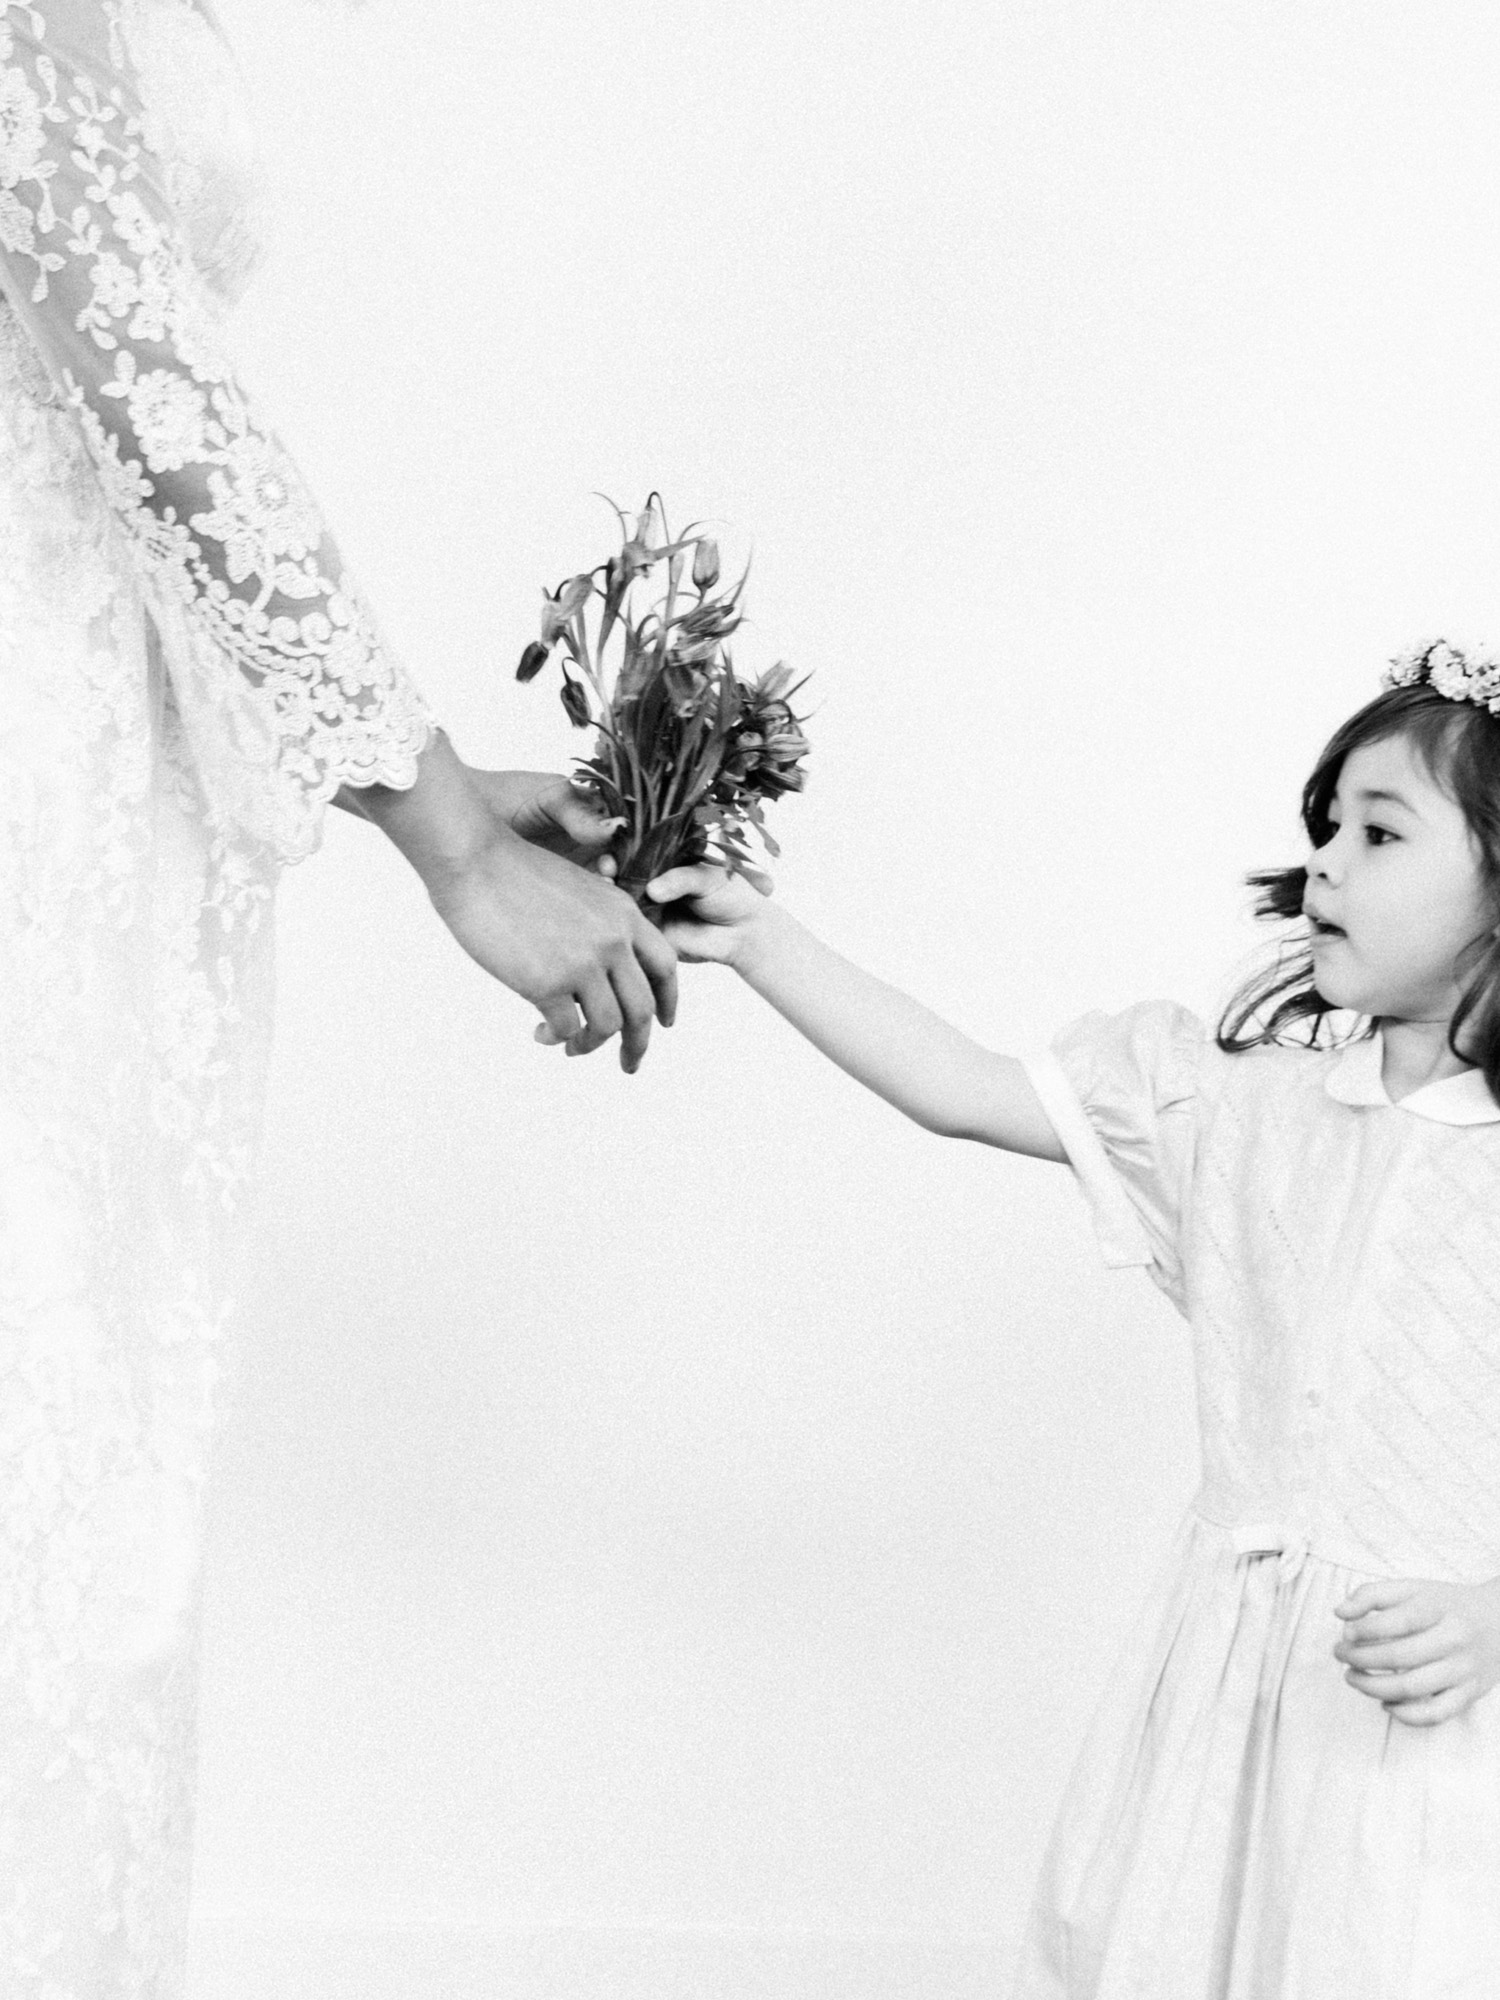 a young flower girl reaches out as a bride in a lace gown hands her a small bouquet